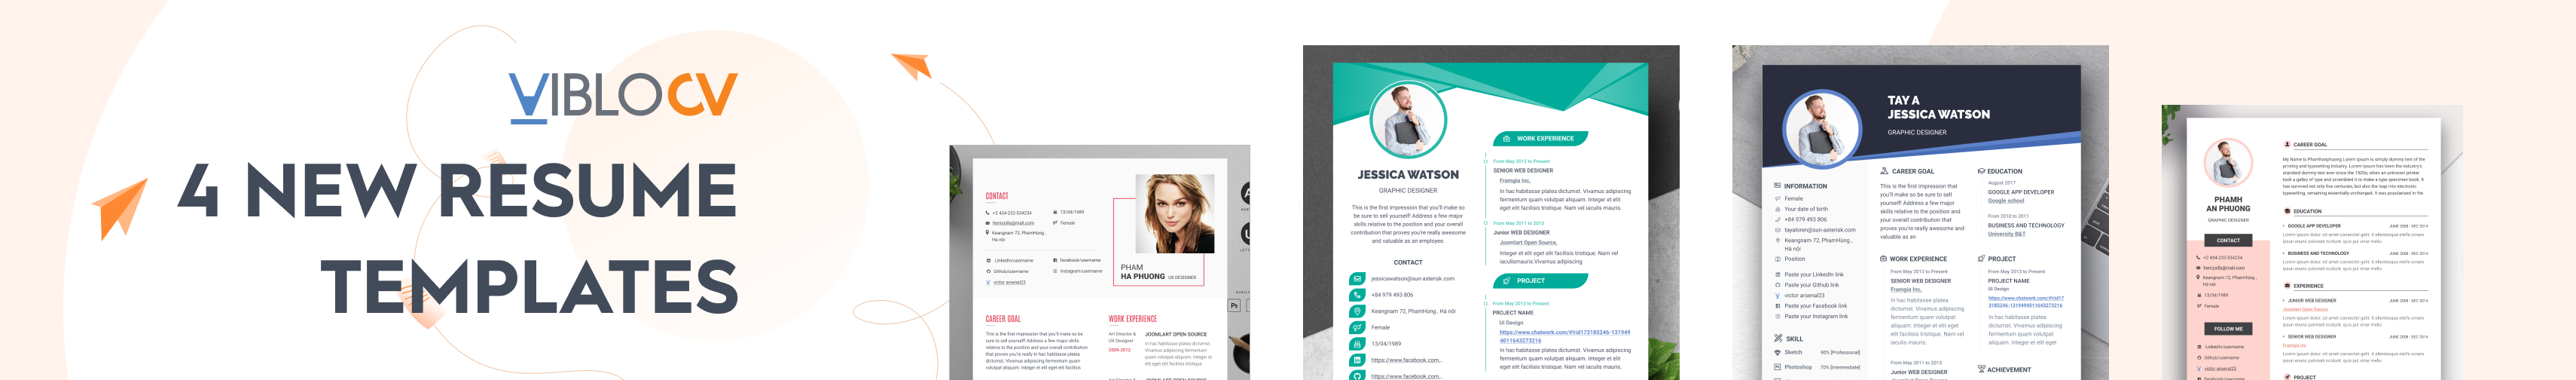 Viblo CV - New resume templates